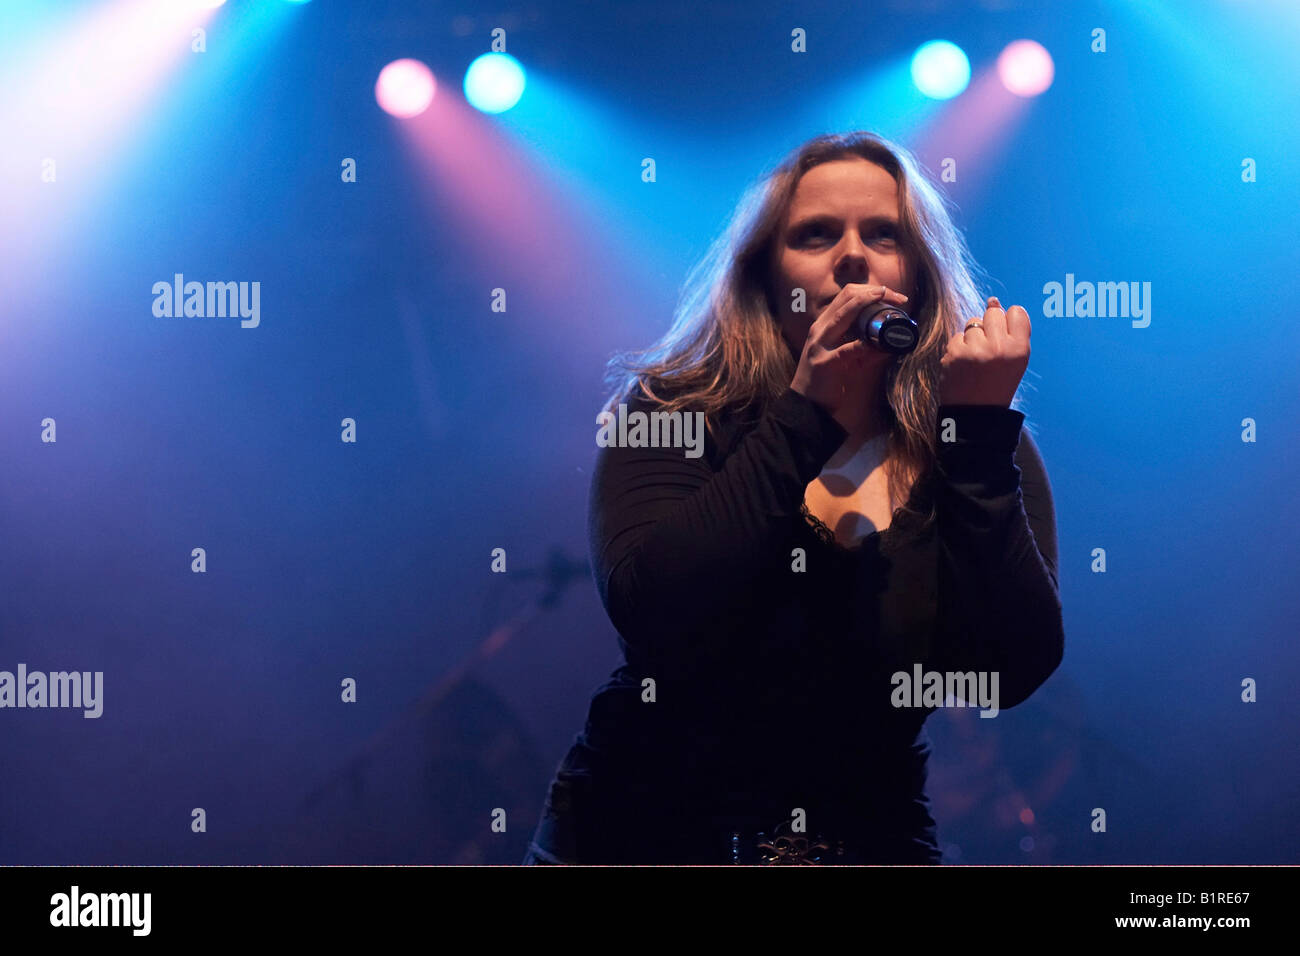 Dawn Of Destiny, supporting act for House of Lords, Konzertfabrik z7 Concert Hall, Pratteln, Switzerland, 23. of - Stock Image